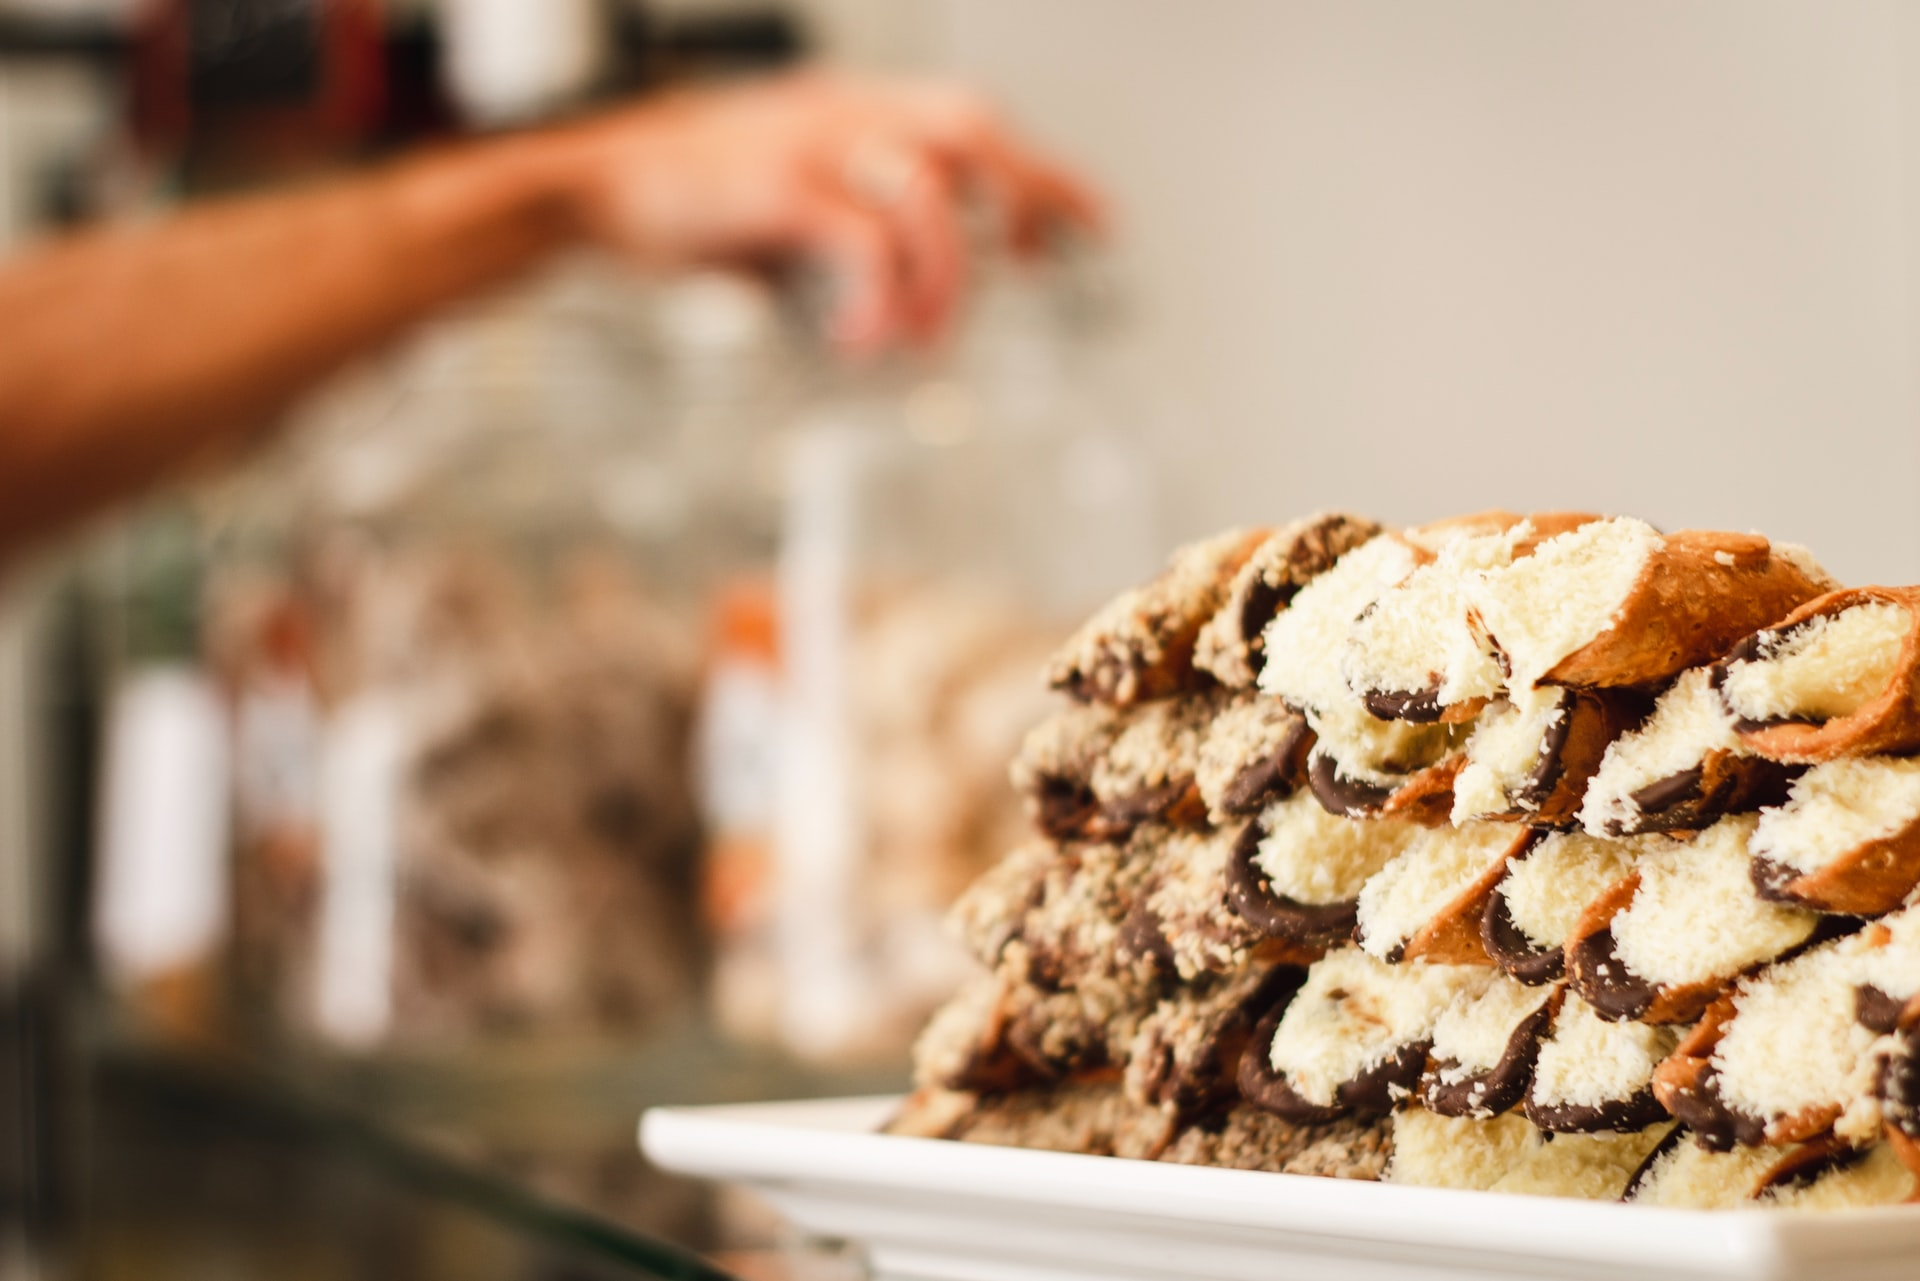 Don't Miss the Rum Cake at Vaccaro's Italian Pastry Shop